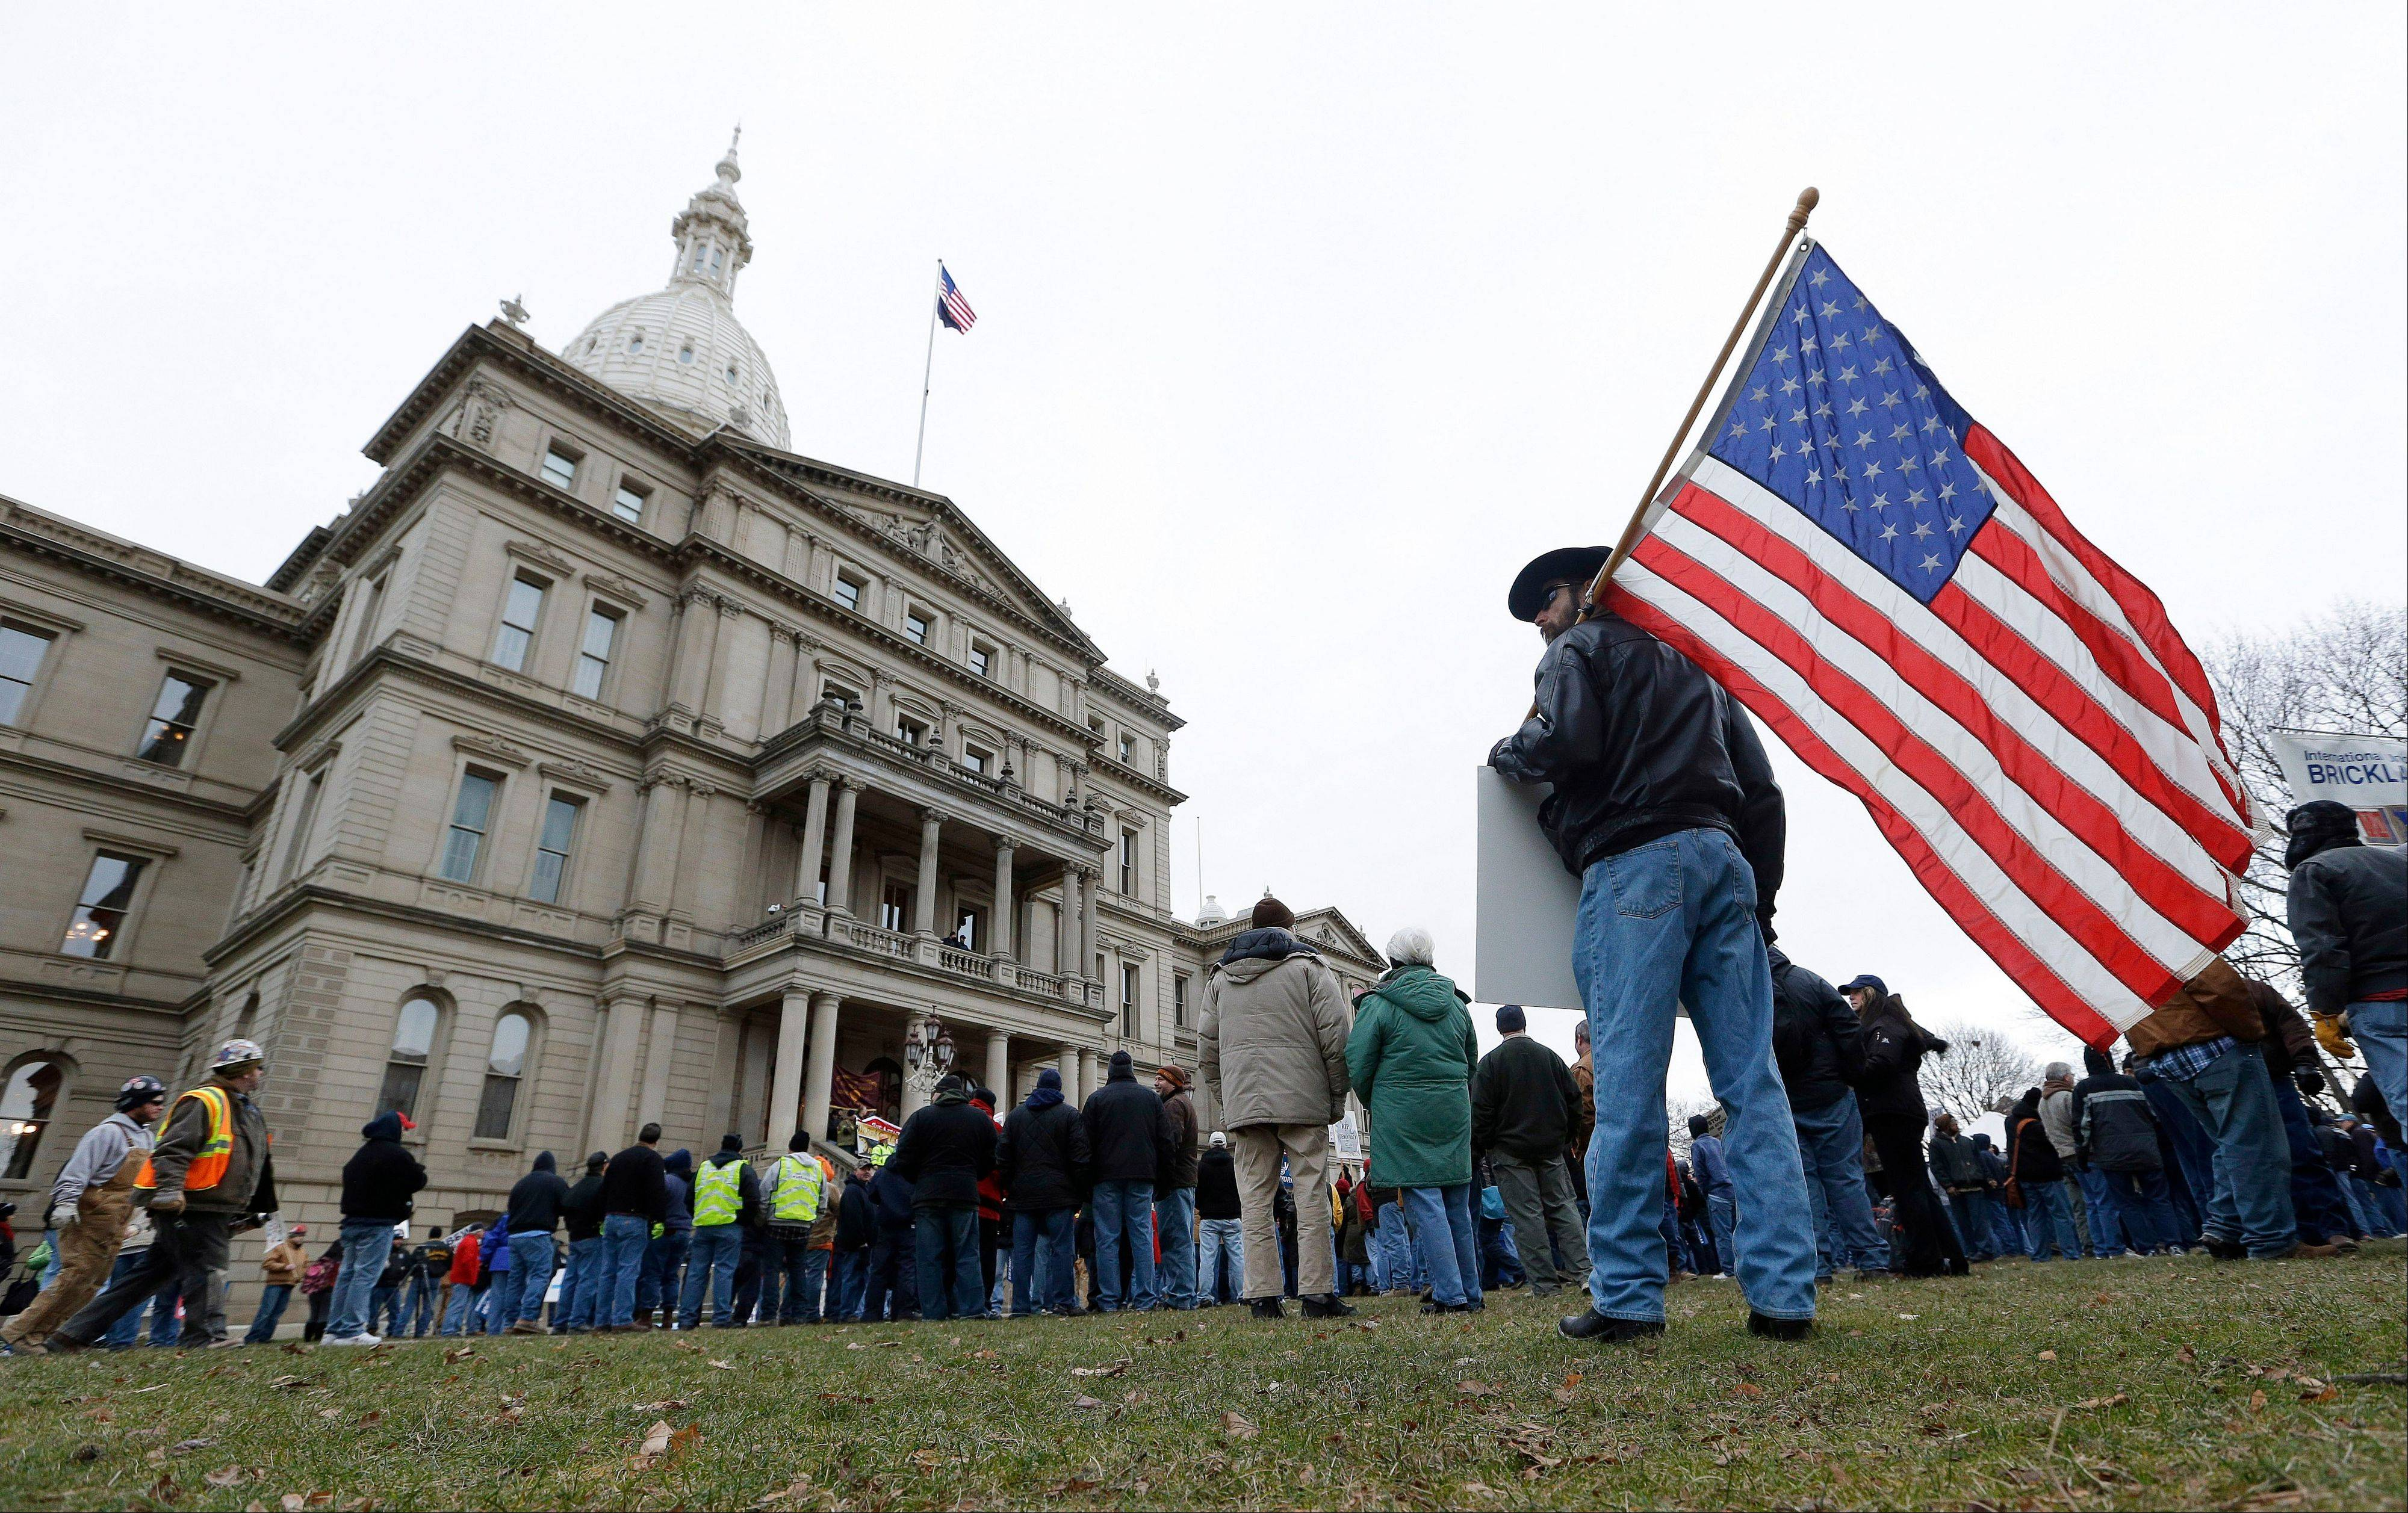 A protester holds an American flag at a rally on the State Capitol grounds in Lansing, Mich., Tuesday, Dec. 11, 2012.